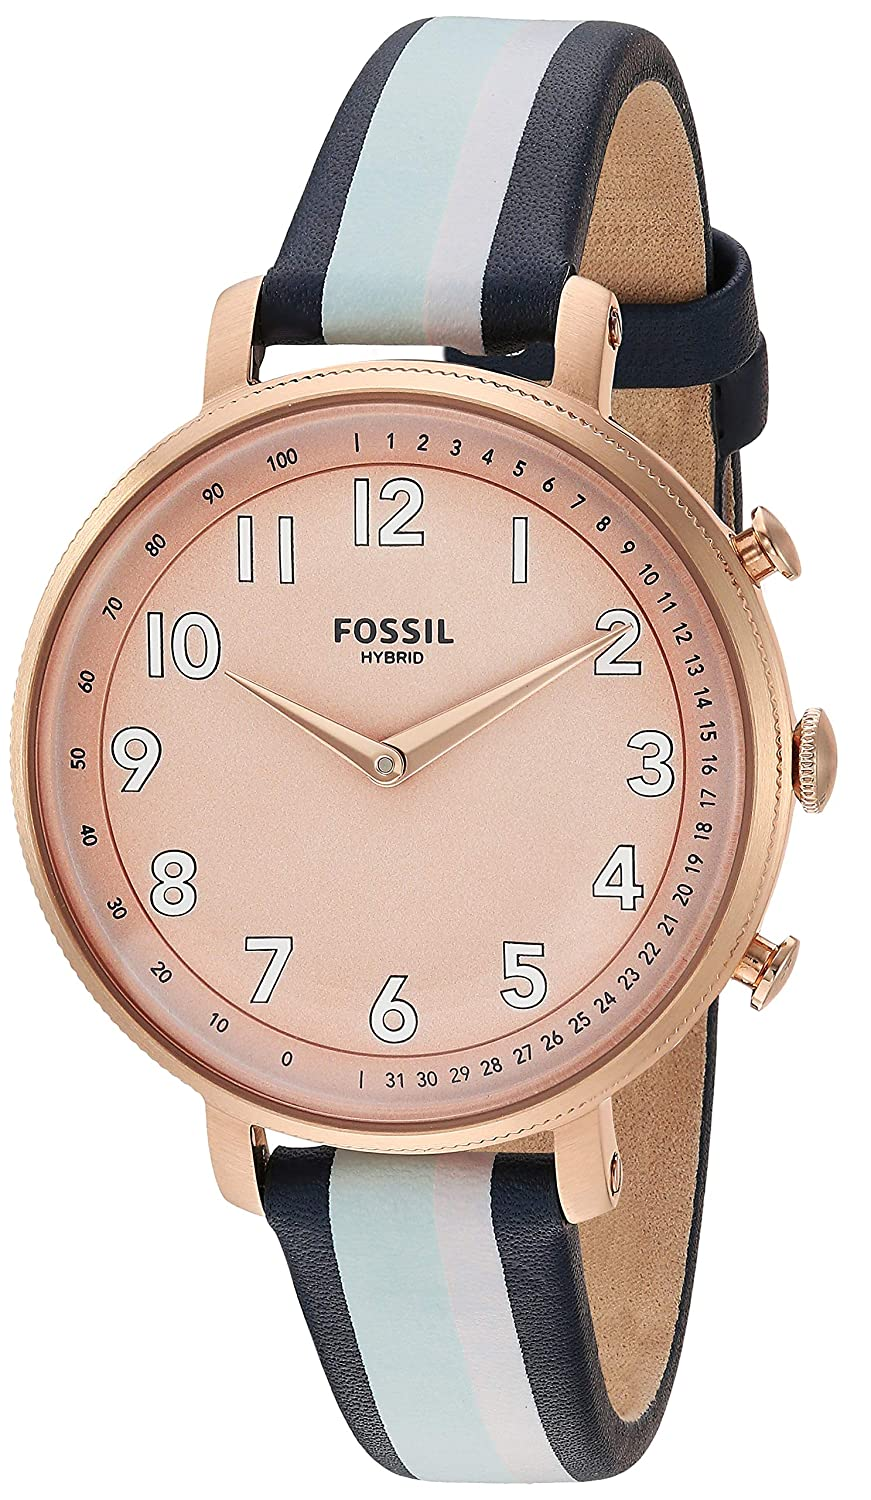 Amazon.com: Fossil Womens Stainless Steel Hybrid Watch with ...